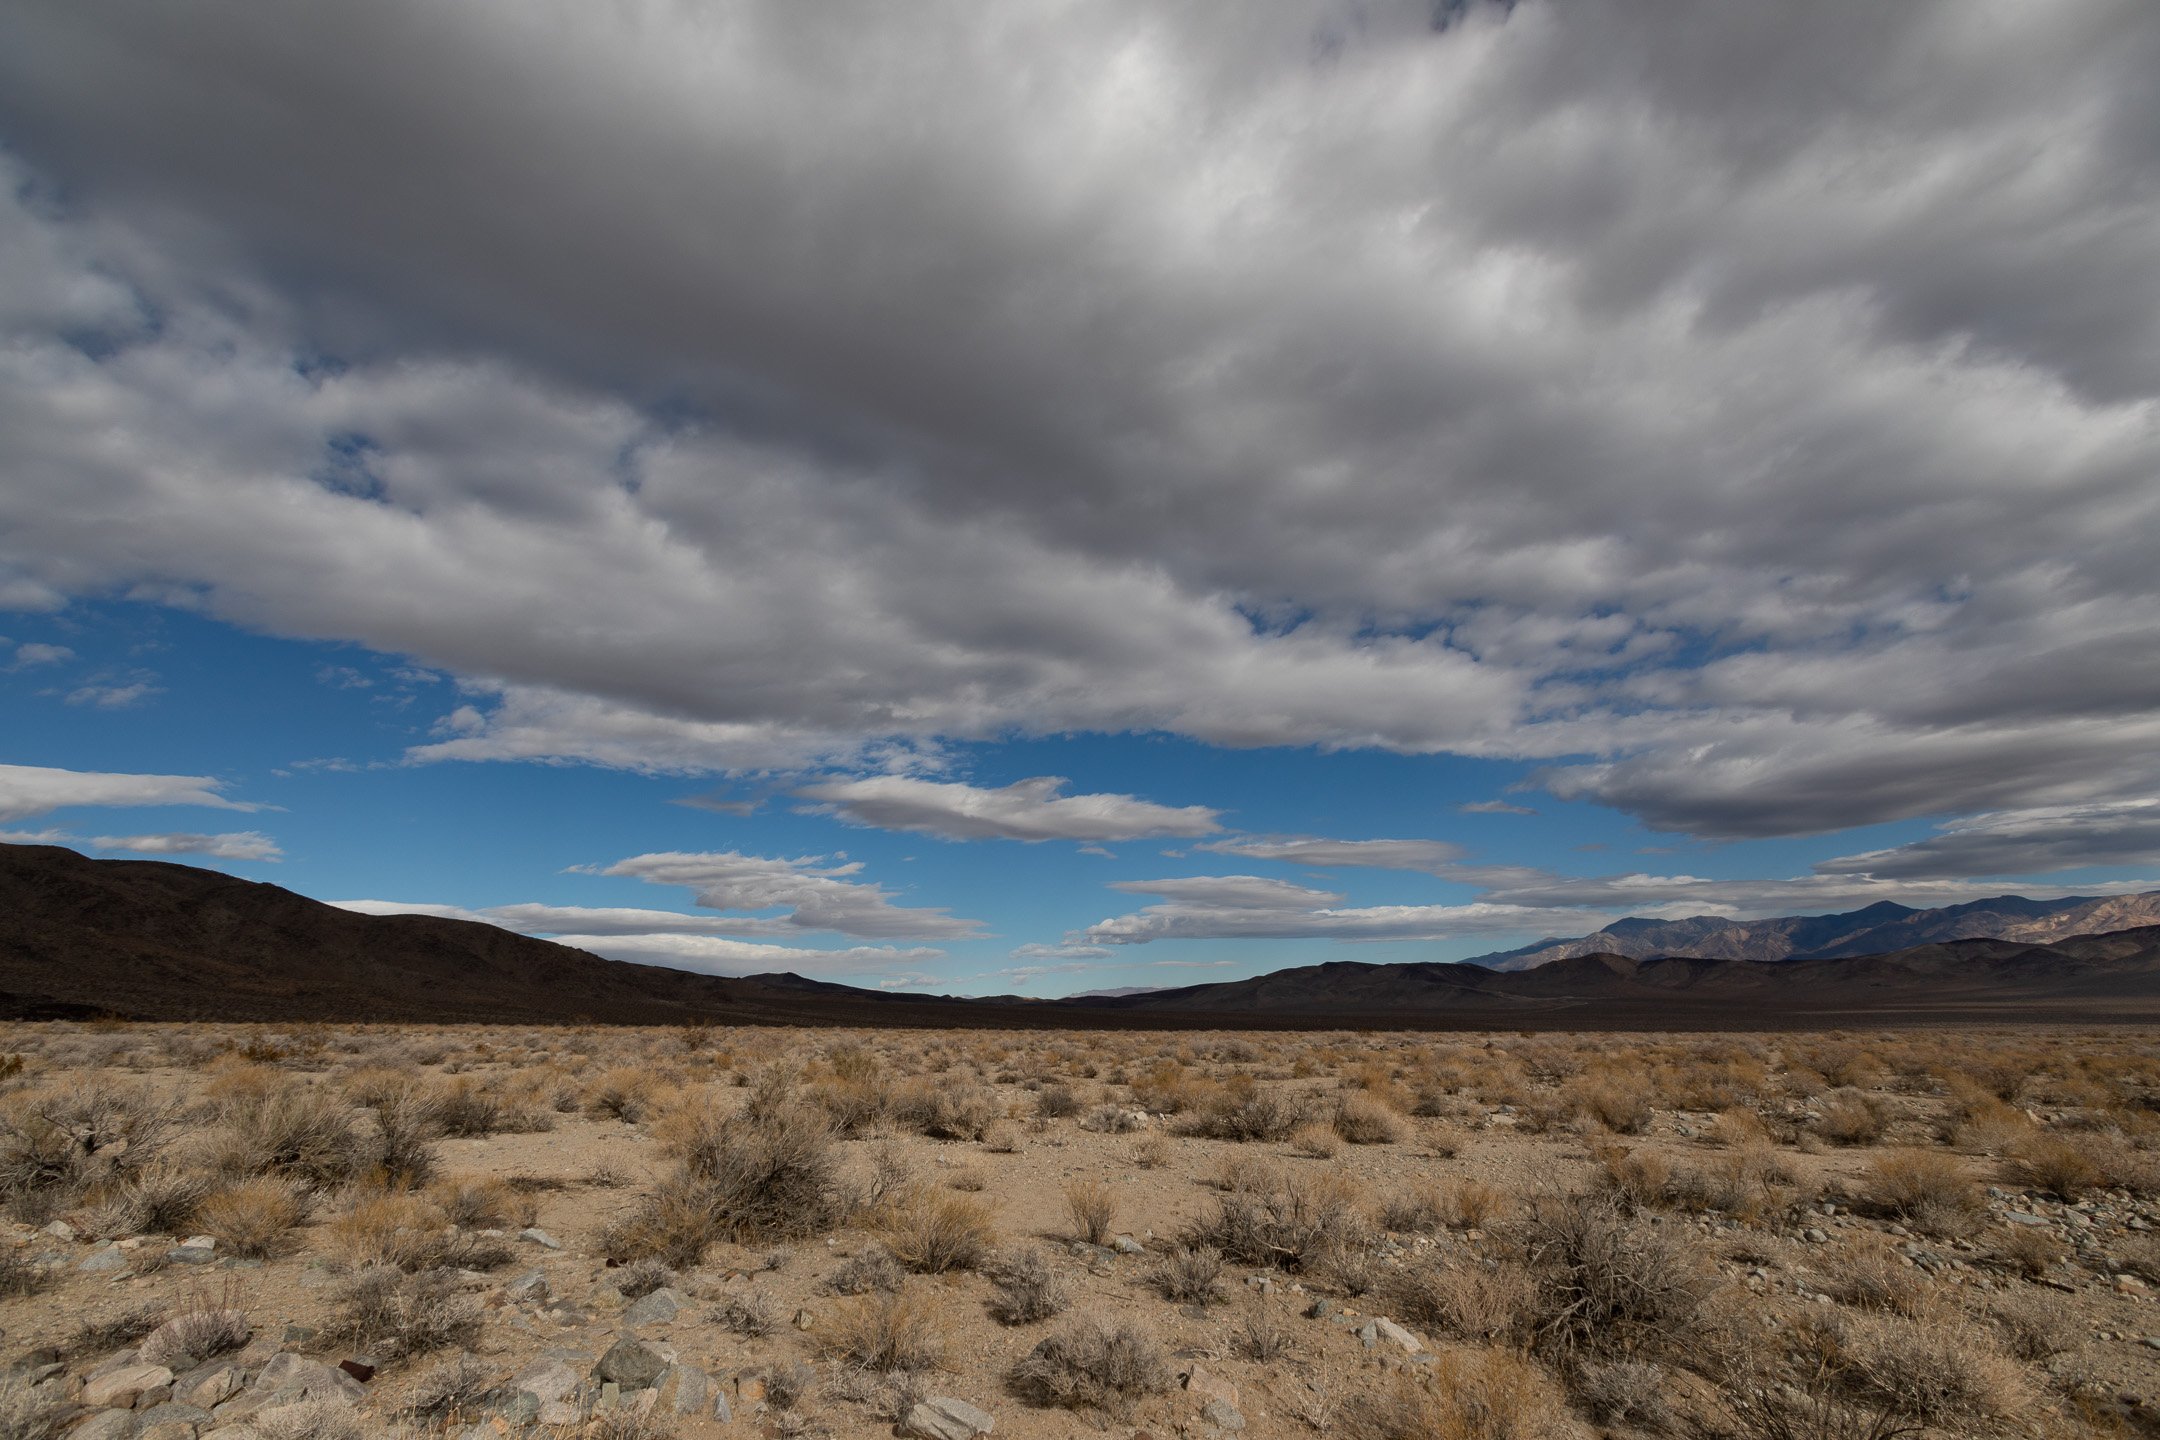 DeathValleyVers17WideAngle12.27.18copy